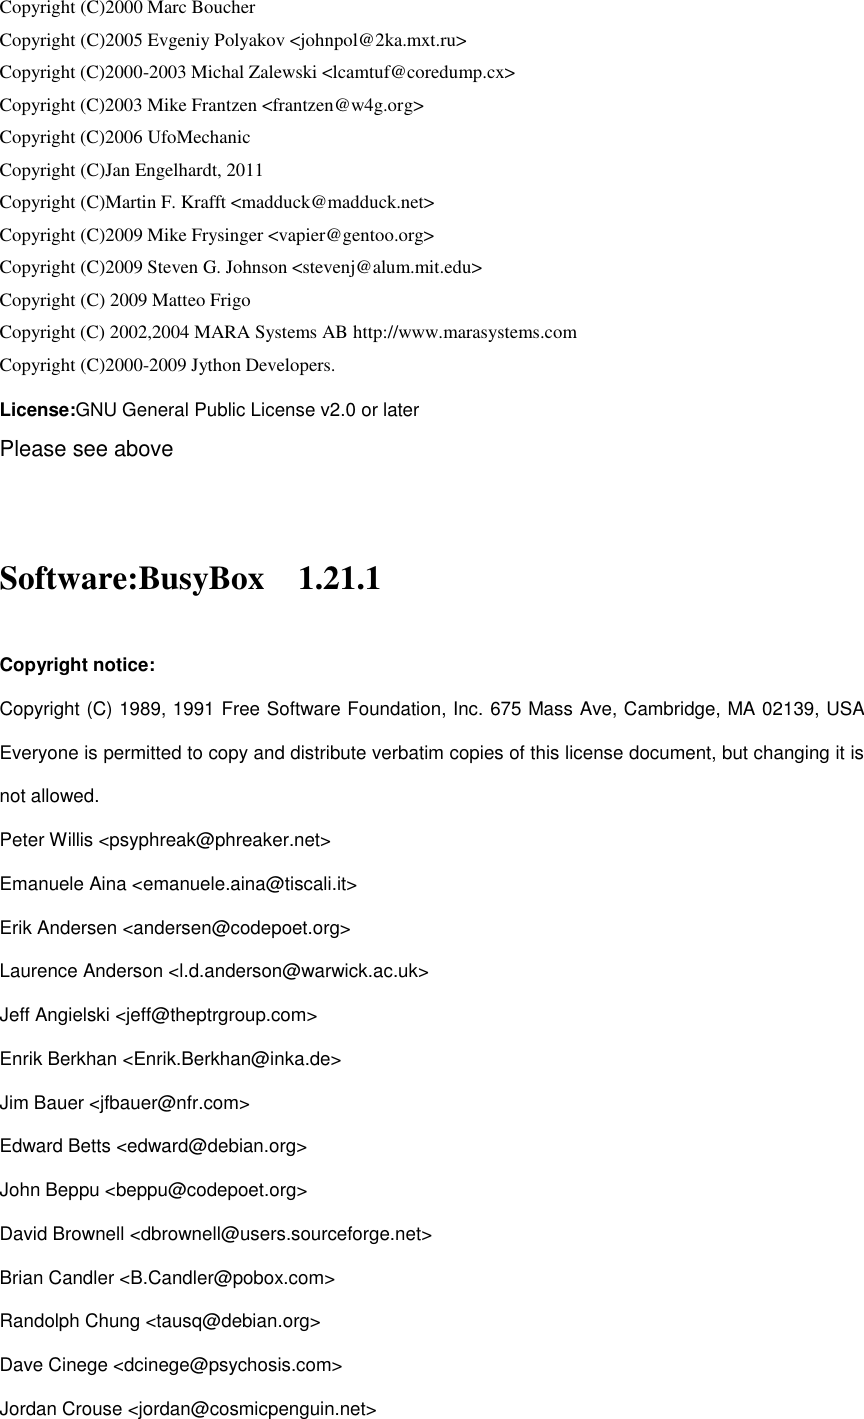 Huawei E3372s 153 Open Source Software Notice And Privacy Policy